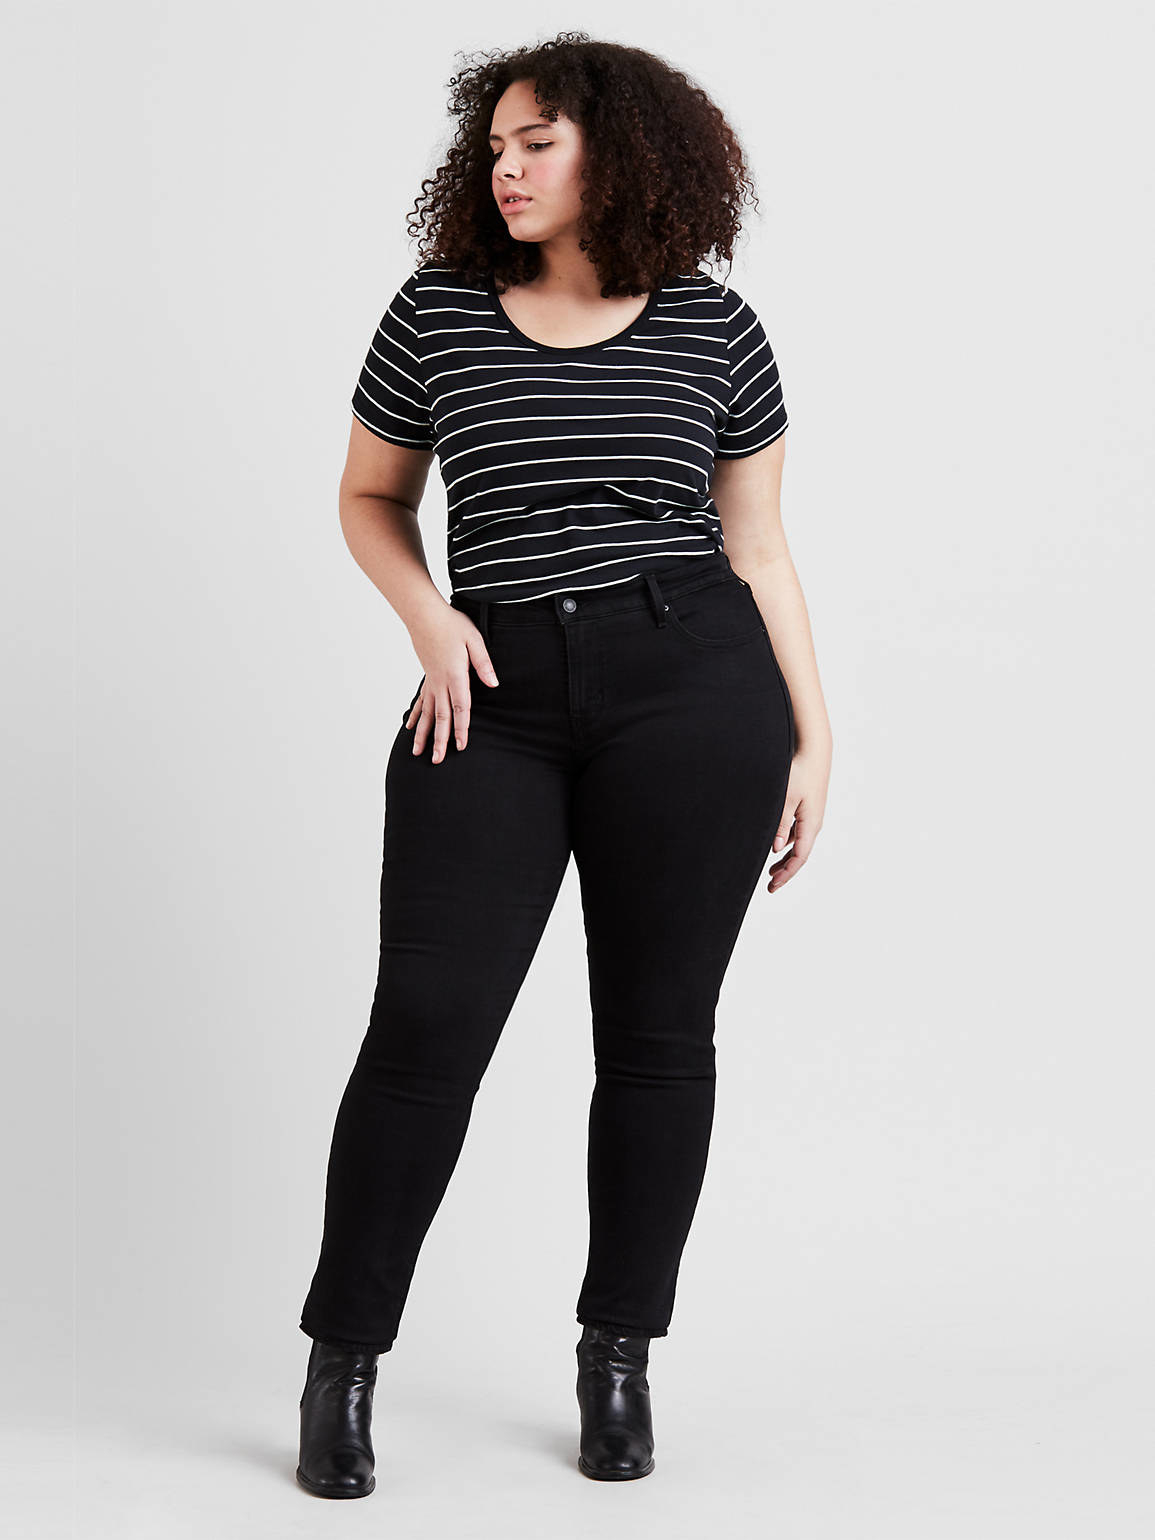 a model wearing the jeans in black with a striped shirt and booties